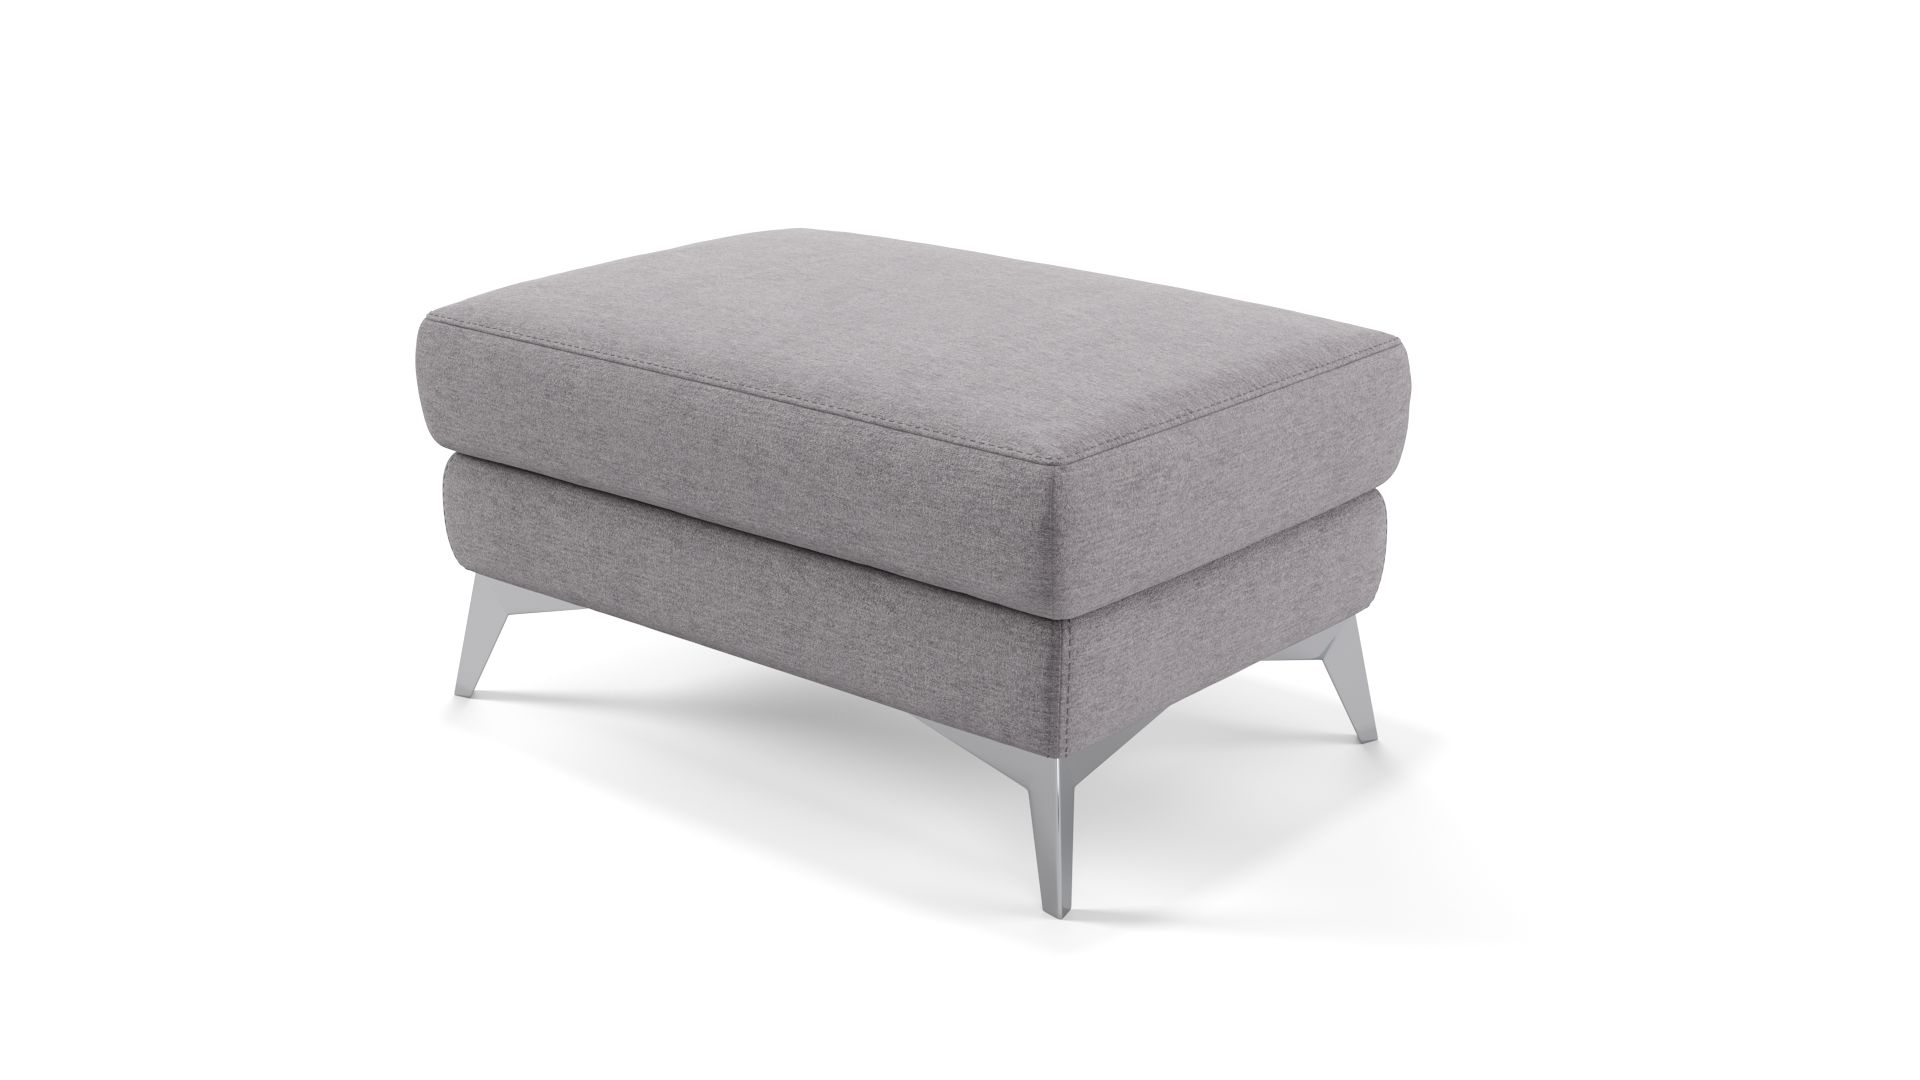 Stoff Hocker ALIANO